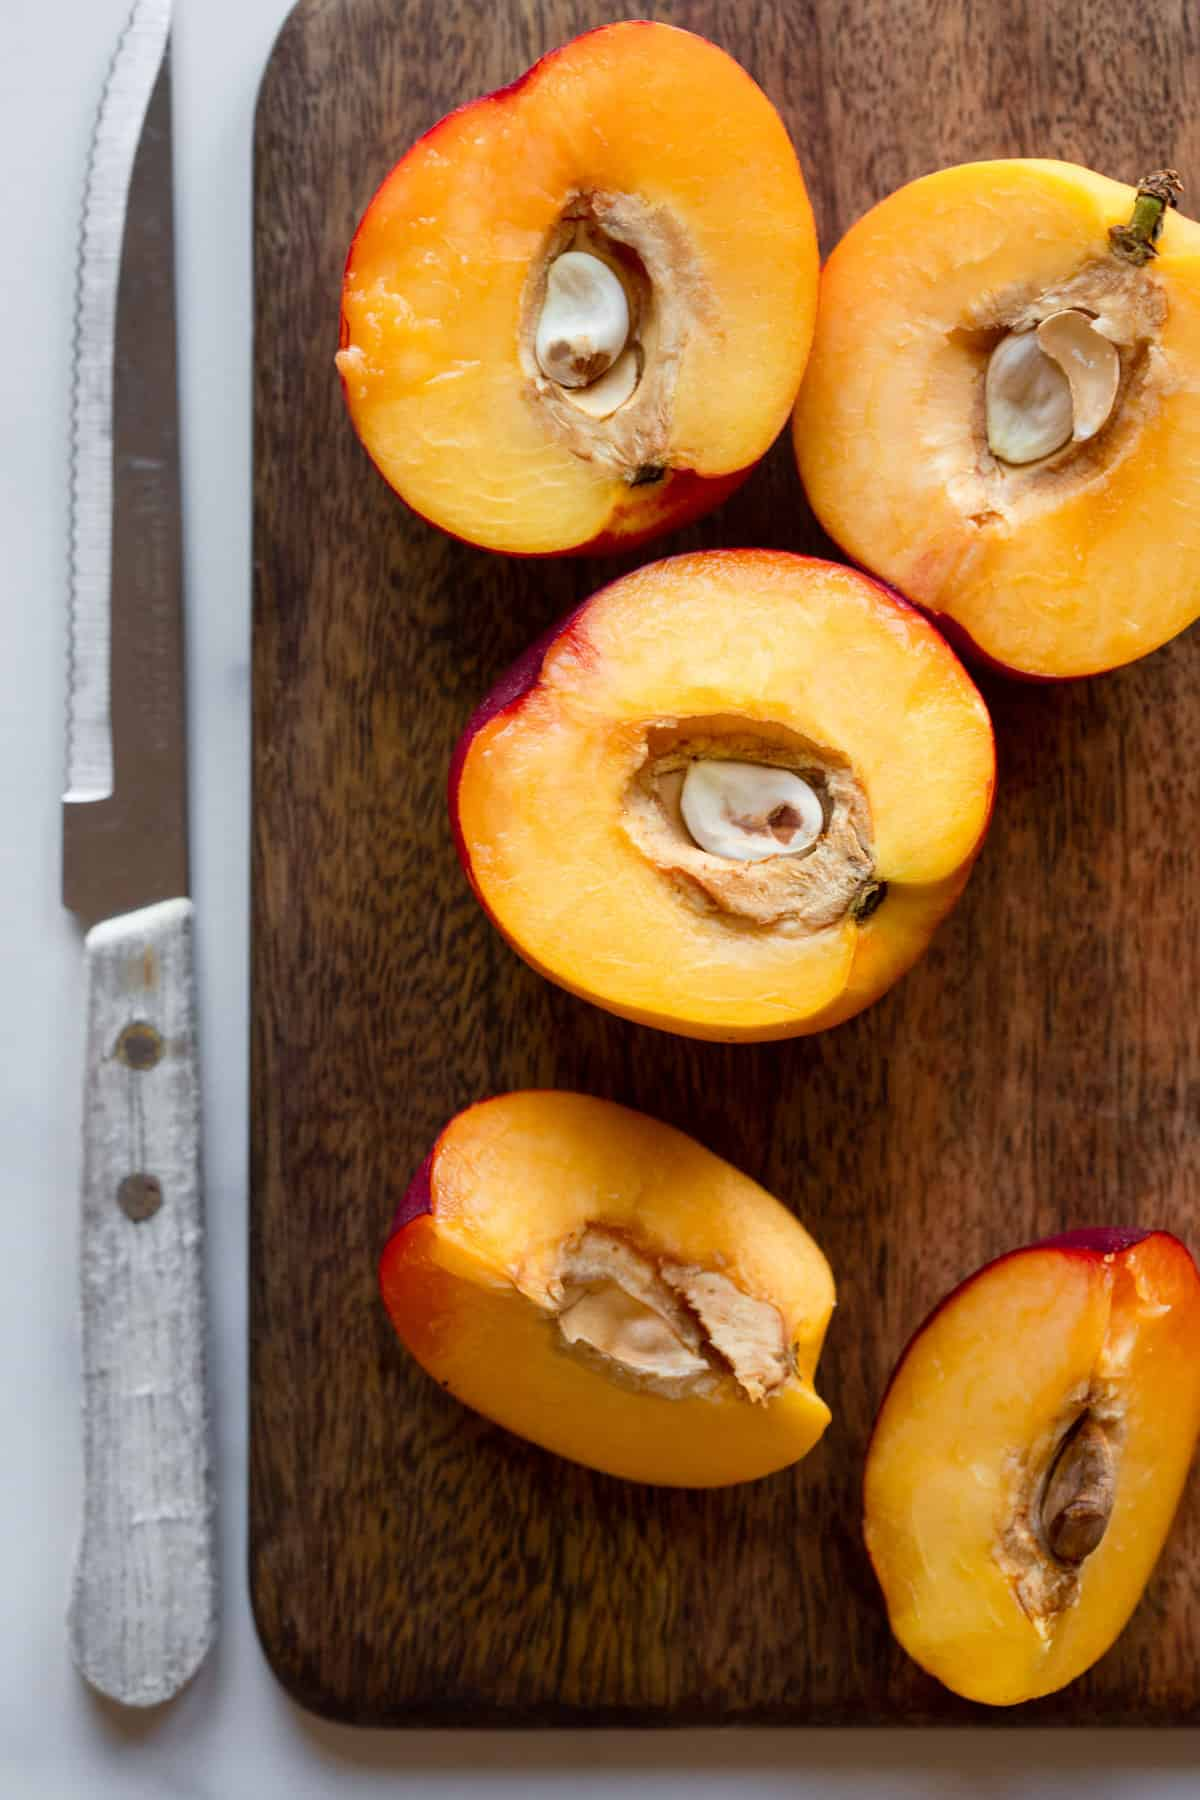 nectarine being slices up for the Nectarine Fruit Salsa recipe